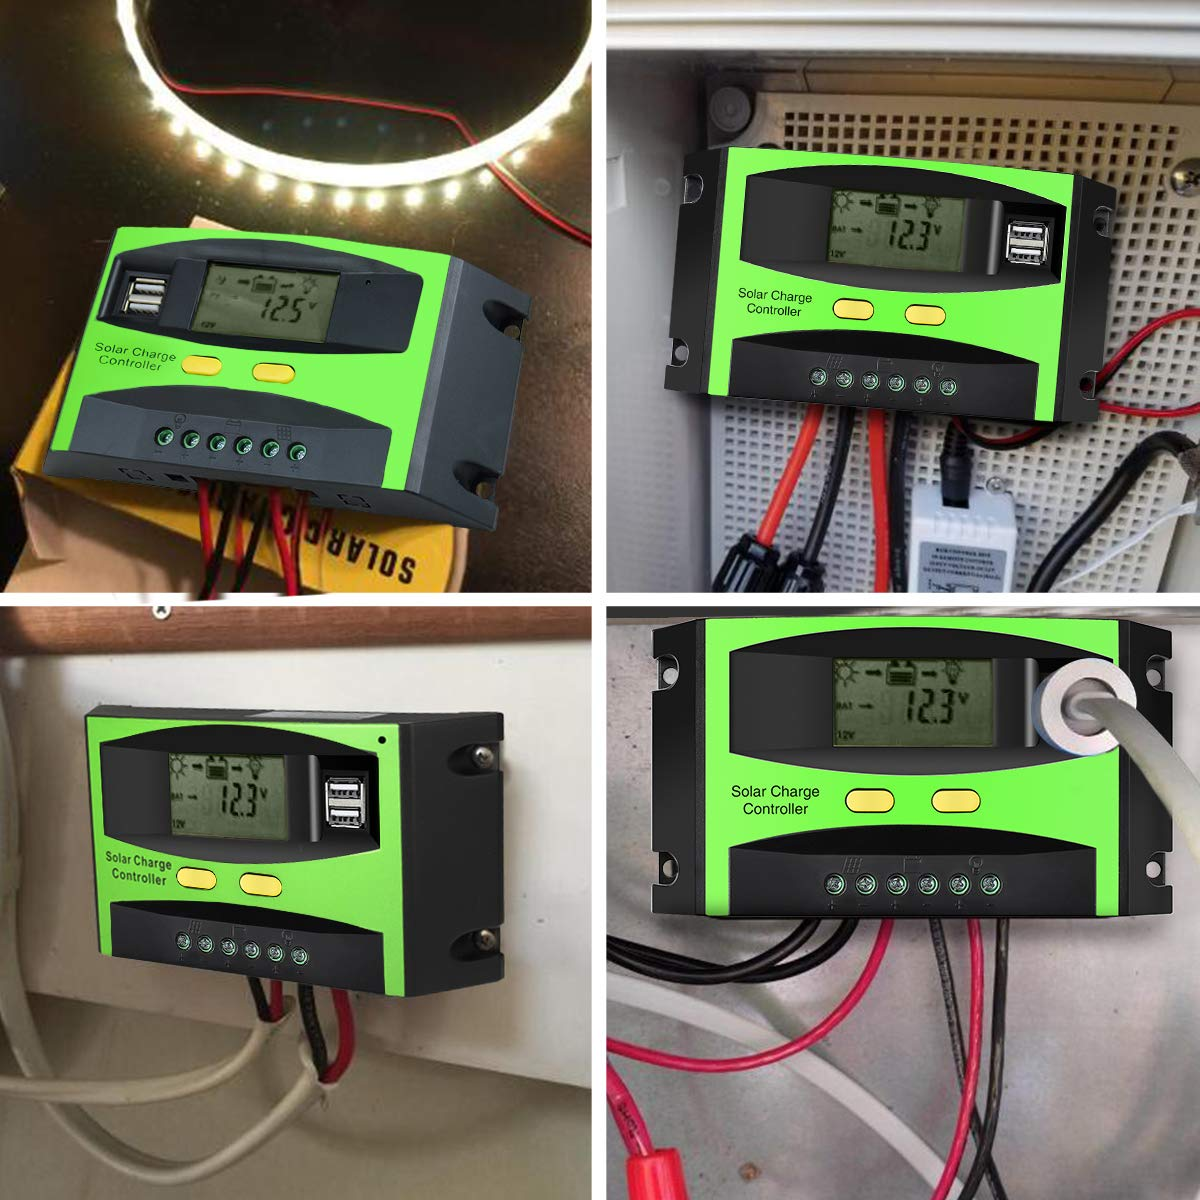 MOHOO Solar Charge Controller, 30A Solar Charger Controller, 12V/24V Solar Panel Intelligent Regulator with Dual USB Port and PWM LCD Display by MOHOO (Image #5)